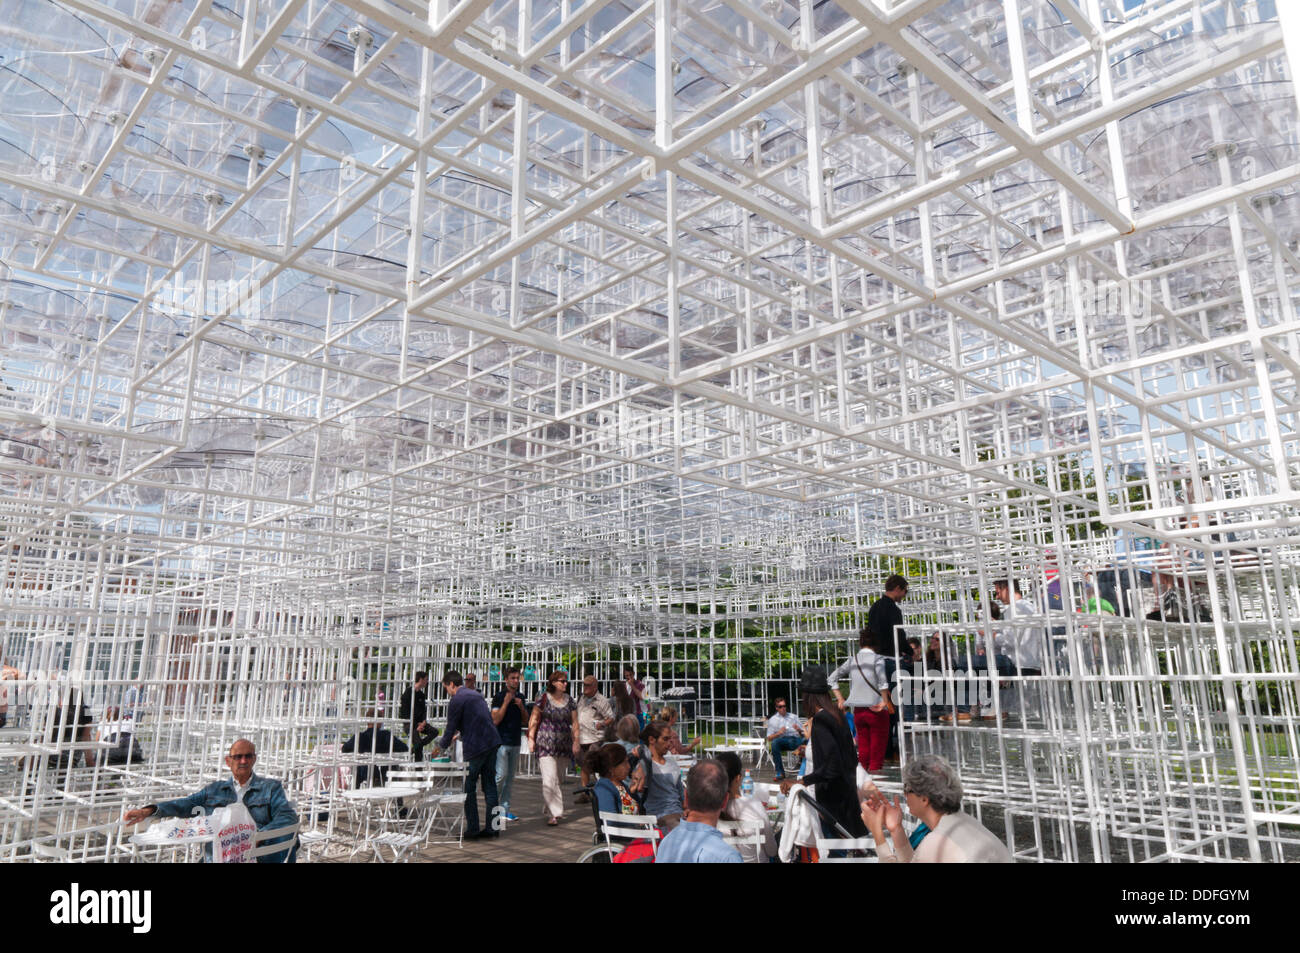 The metal lattice ceiling of the 2013 Serpentine Gallery Summer Pavilion designed by the Japanese architect Sou - Stock Image